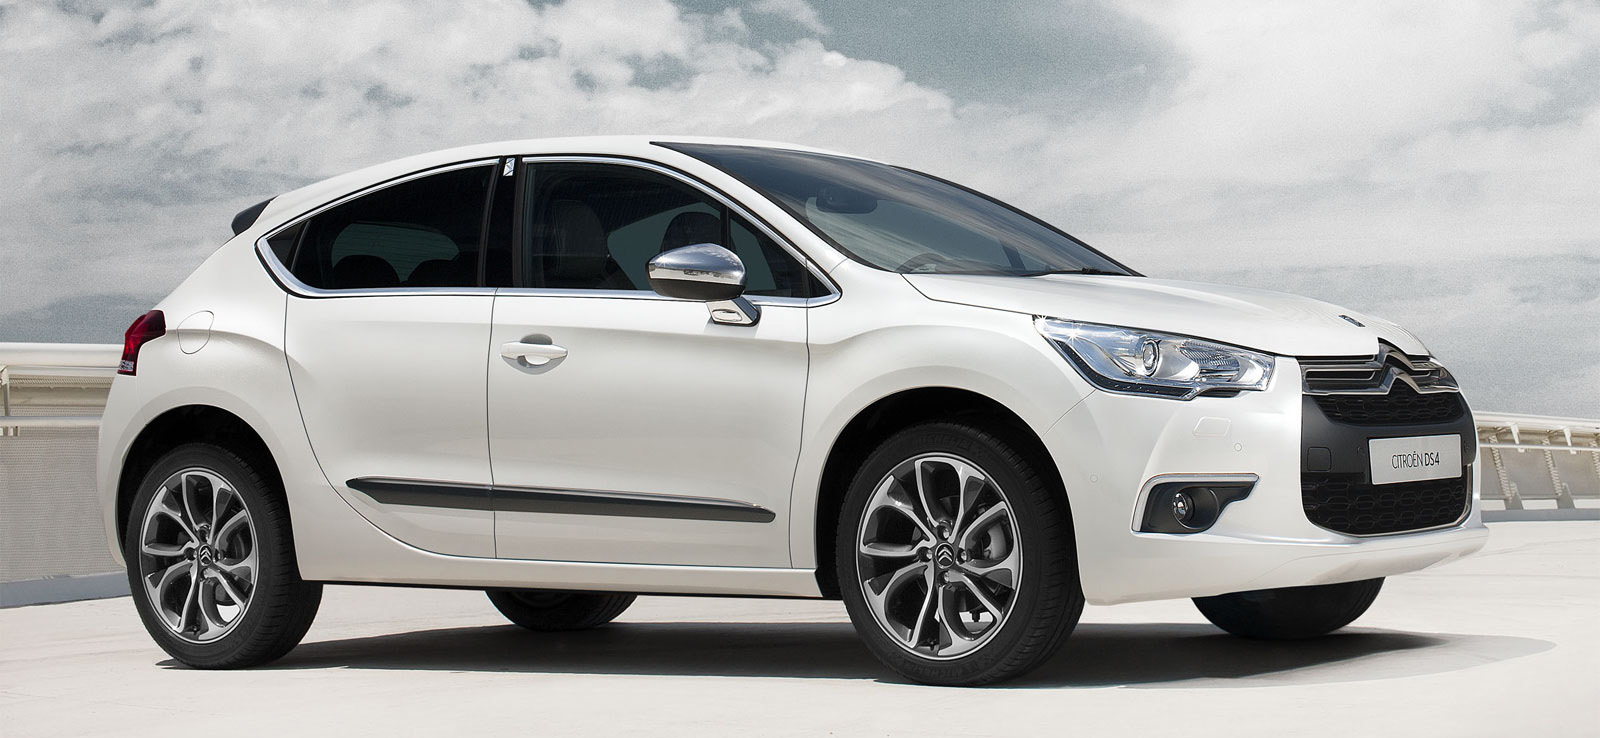 citroen ds4 thp200 manual now available rm175k. Black Bedroom Furniture Sets. Home Design Ideas